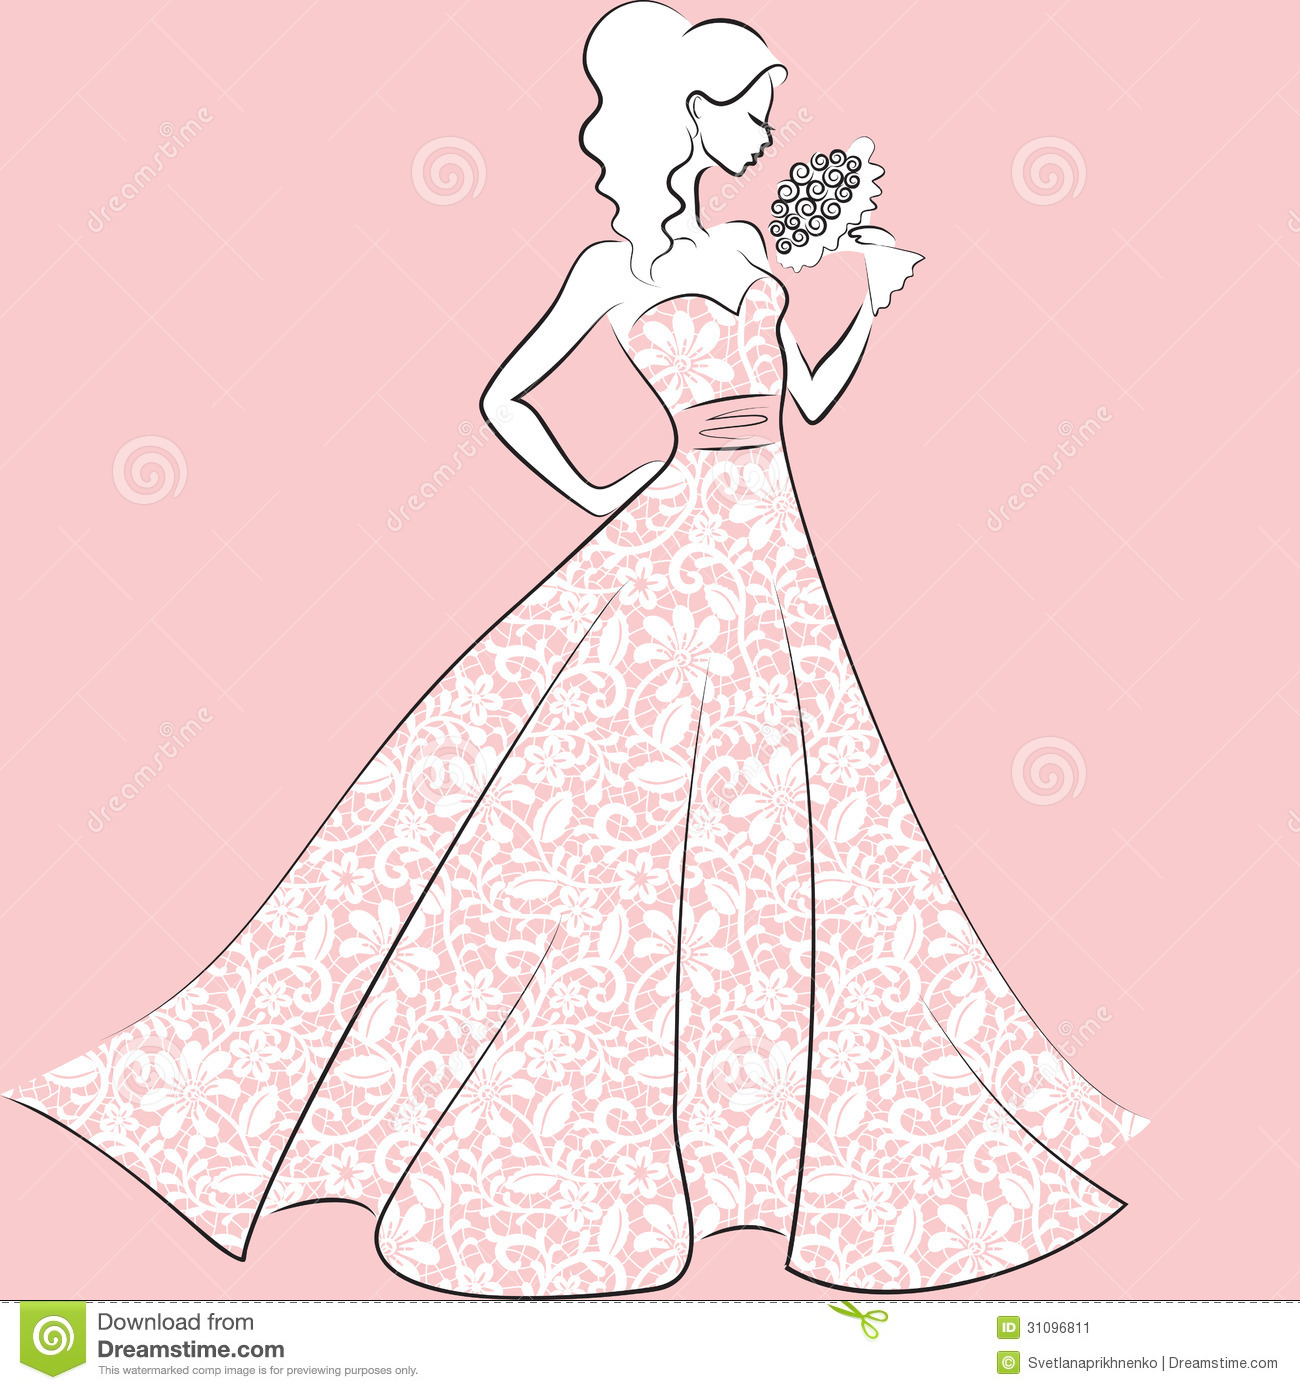 Wedding Dress clipart debutante Carttoon dresses_dressesss Quince Dress_Other Quince